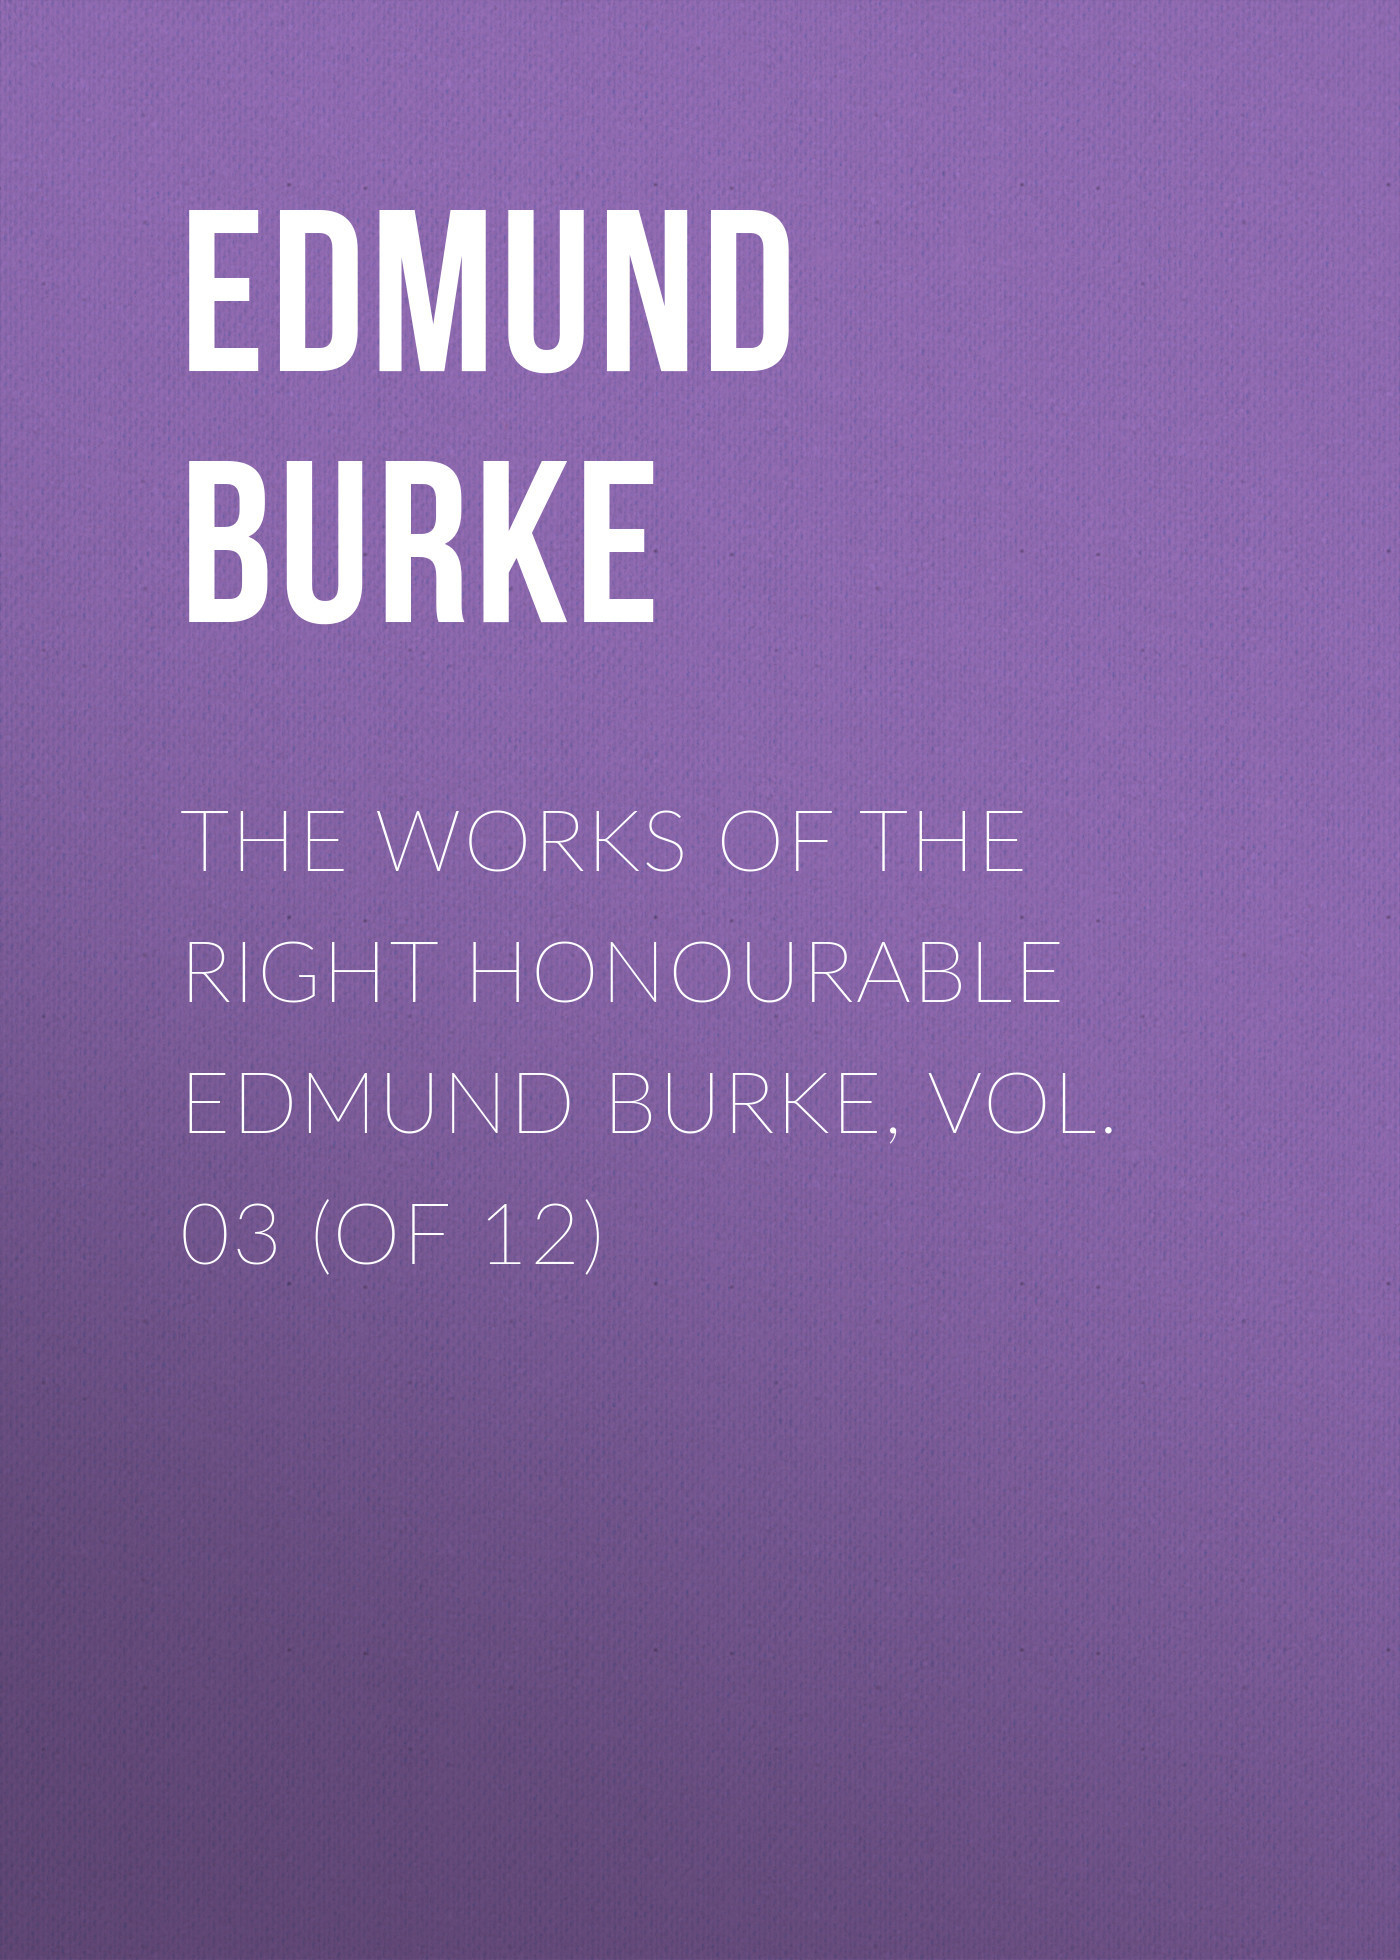 Edmund Burke The Works of the Right Honourable Edmund Burke, Vol. 03 (of 12) edmund burke the works of the right honourable edmund burke vol 09 of 12